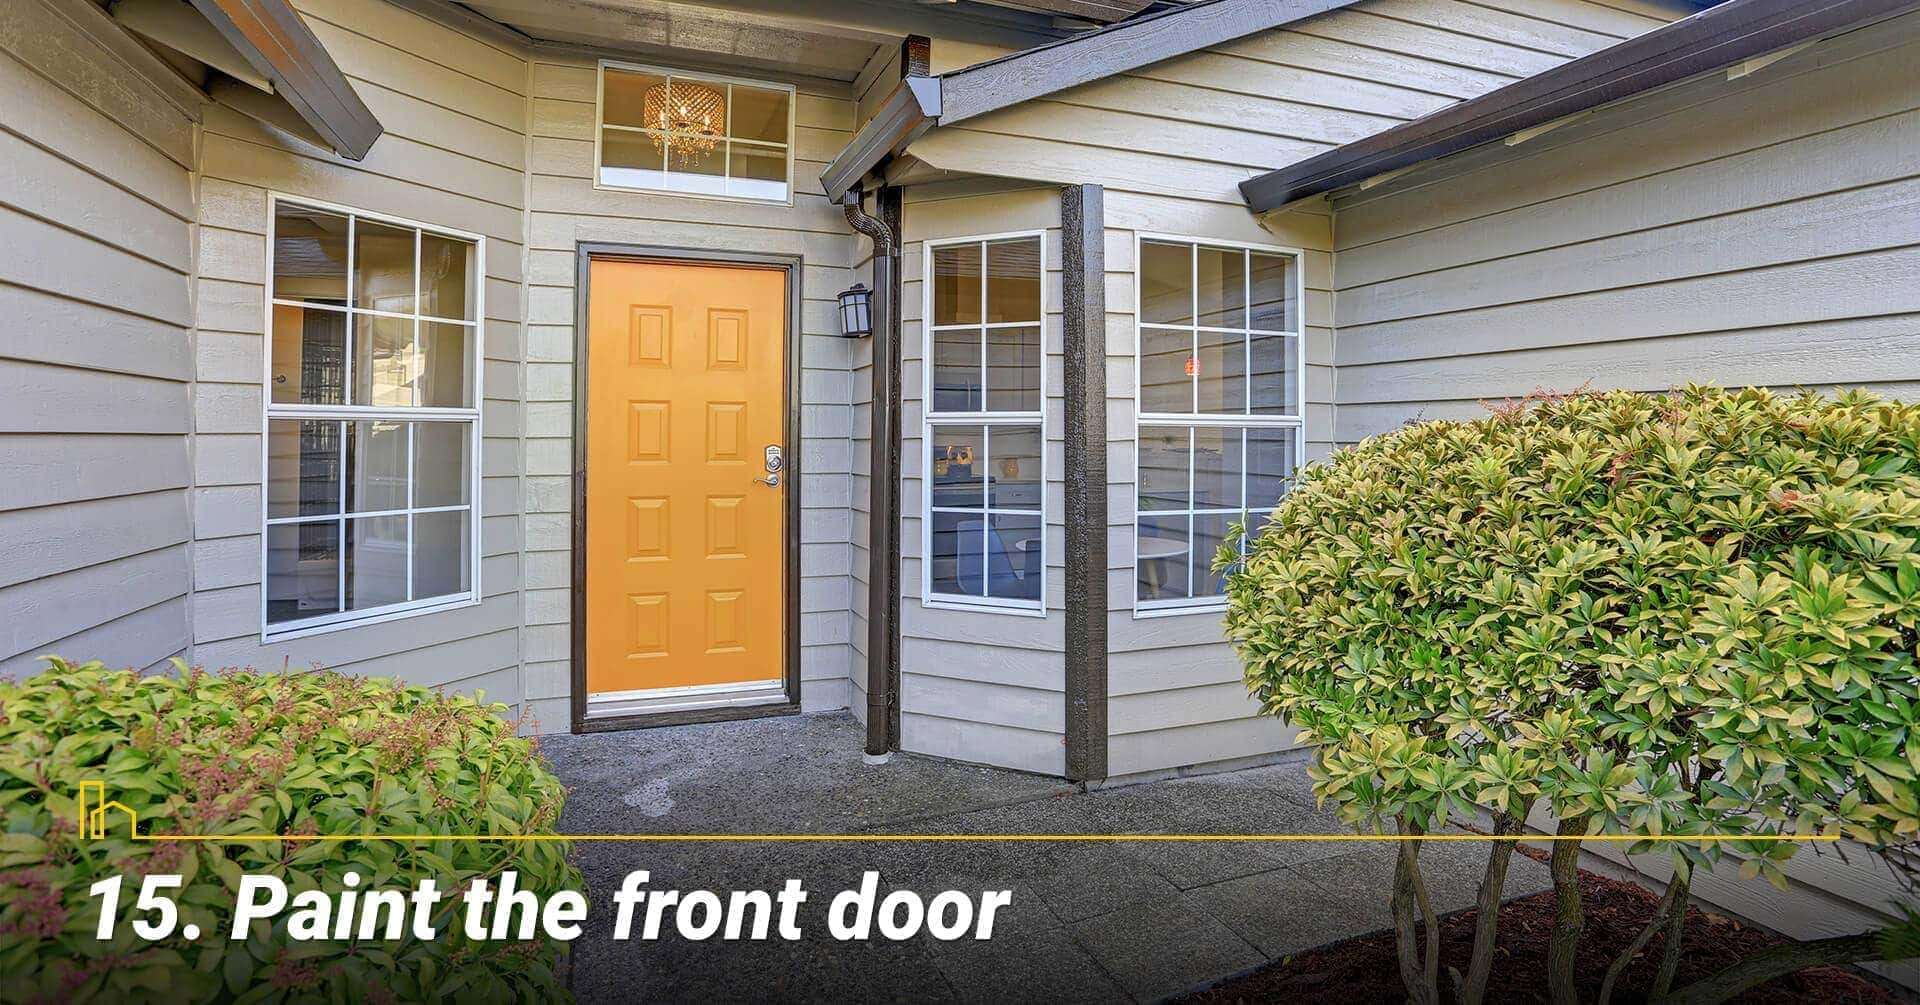 Paint the front door, make the front door looks new